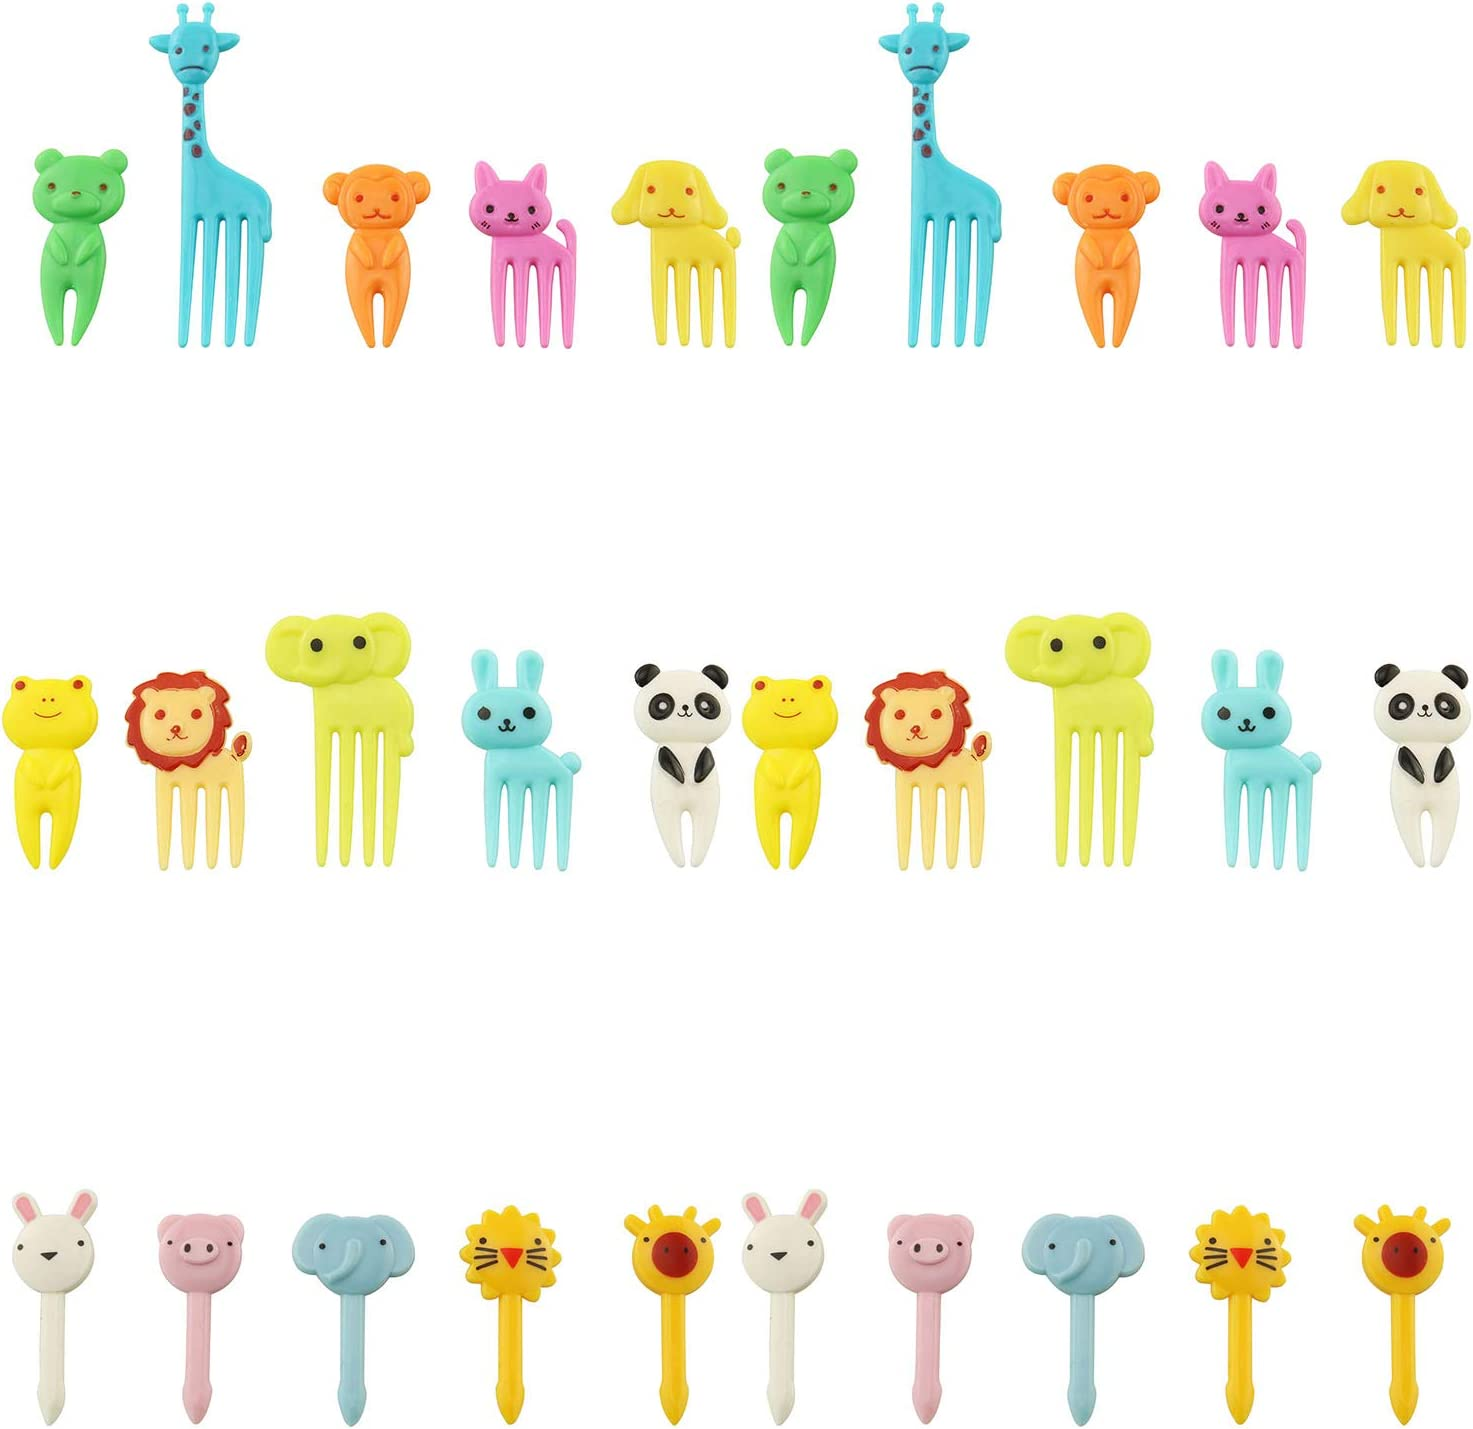 Tegg Food Pick 30PCS Cute Animal Bento Decoration Food Picks Forks Skewer For Lunch Box Mini Cartoon Toothpick